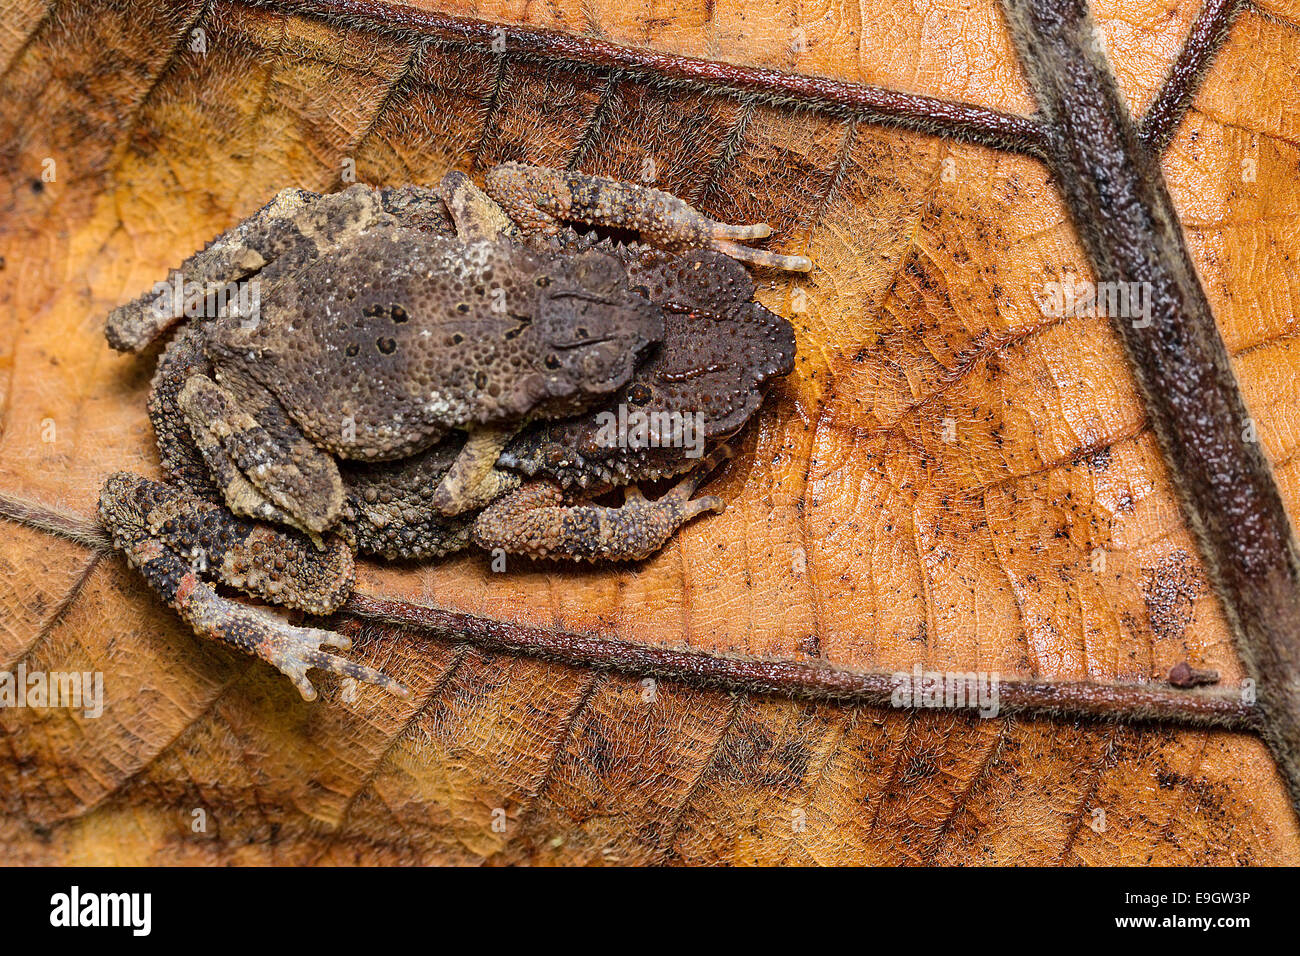 Mating pair of Dwarf Stream Toad (Ingerophrynus parvus) in amplexus in the tropical rainforest of Malaysia - Stock Image